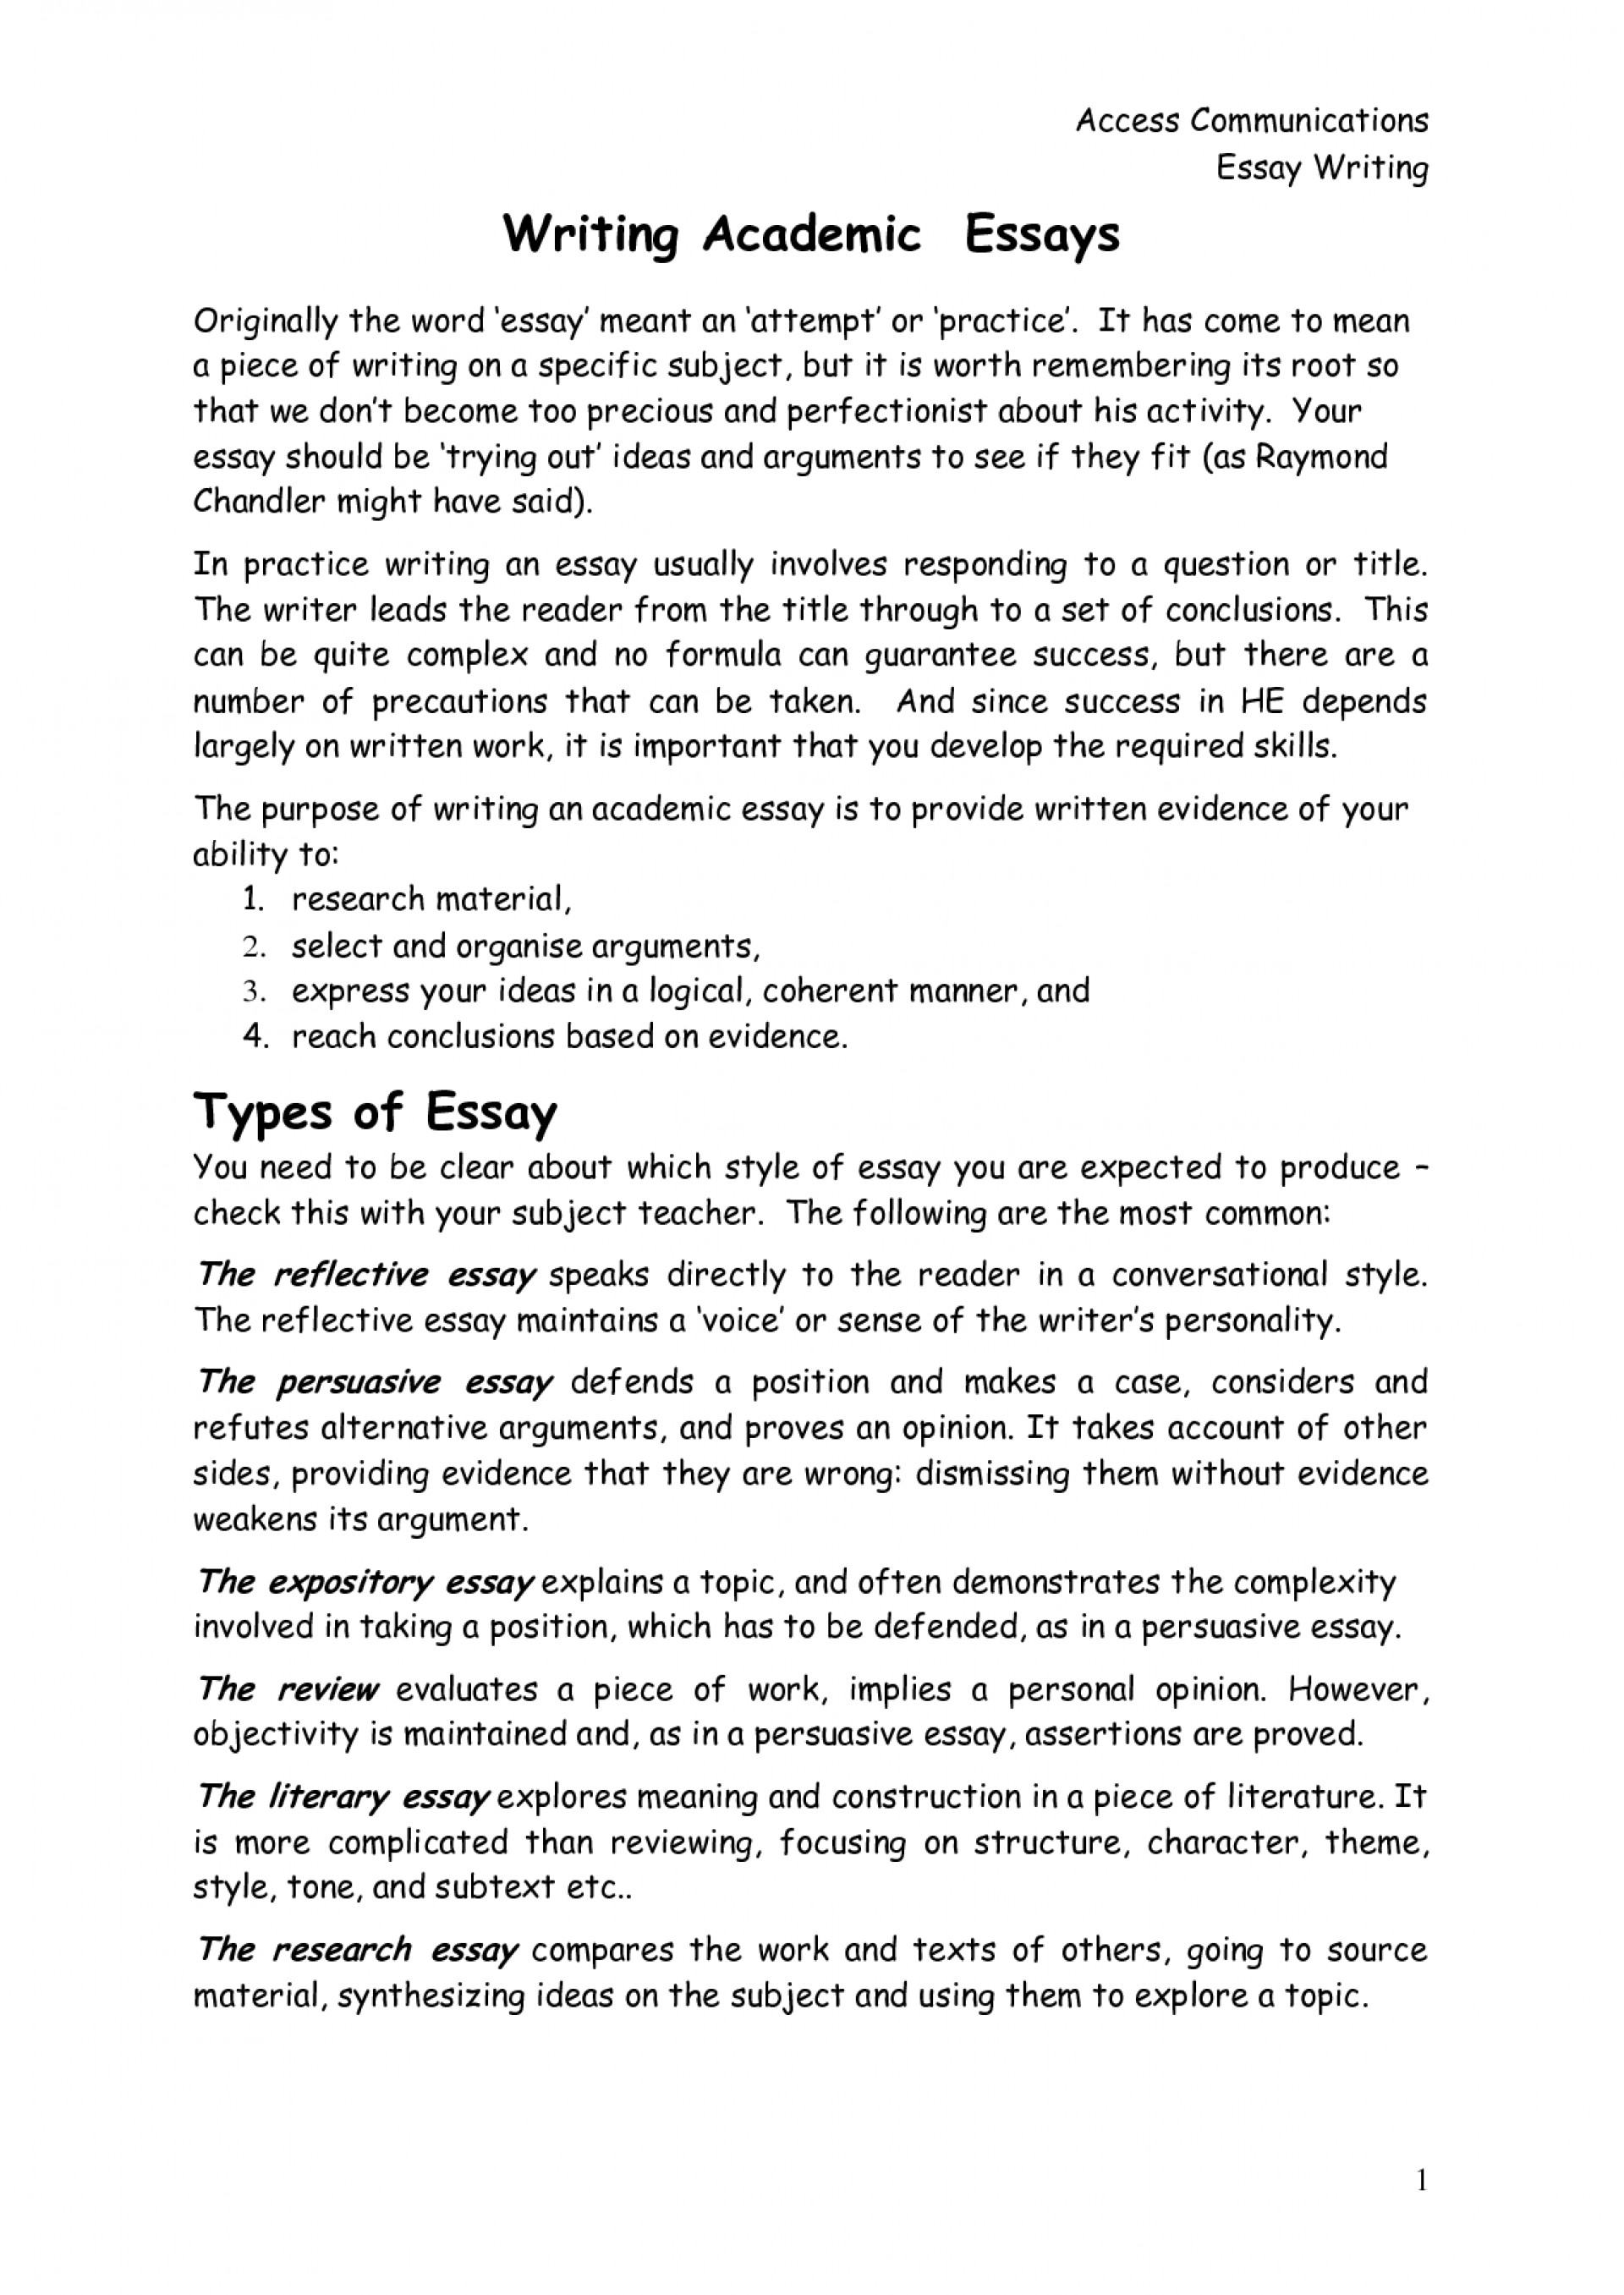 016 Reflective Essay On Academic Writings Beautiful Examples Advanced Higher English Writing Example Pdf About Life 1920